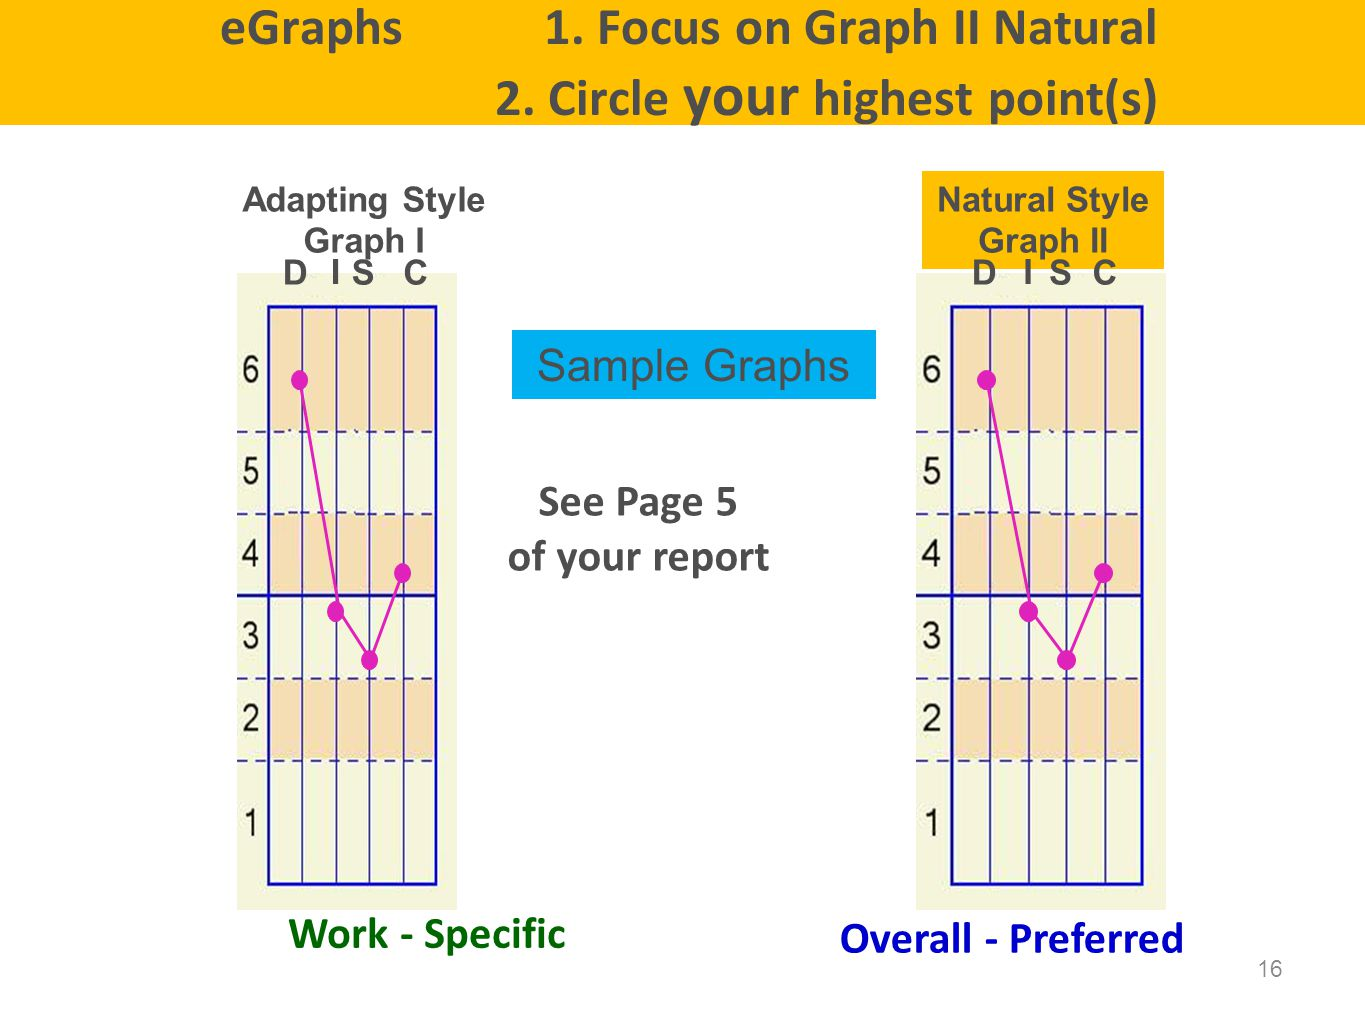 eGraphs 1. Focus on Graph II Natural 2. Circle your highest point(s)